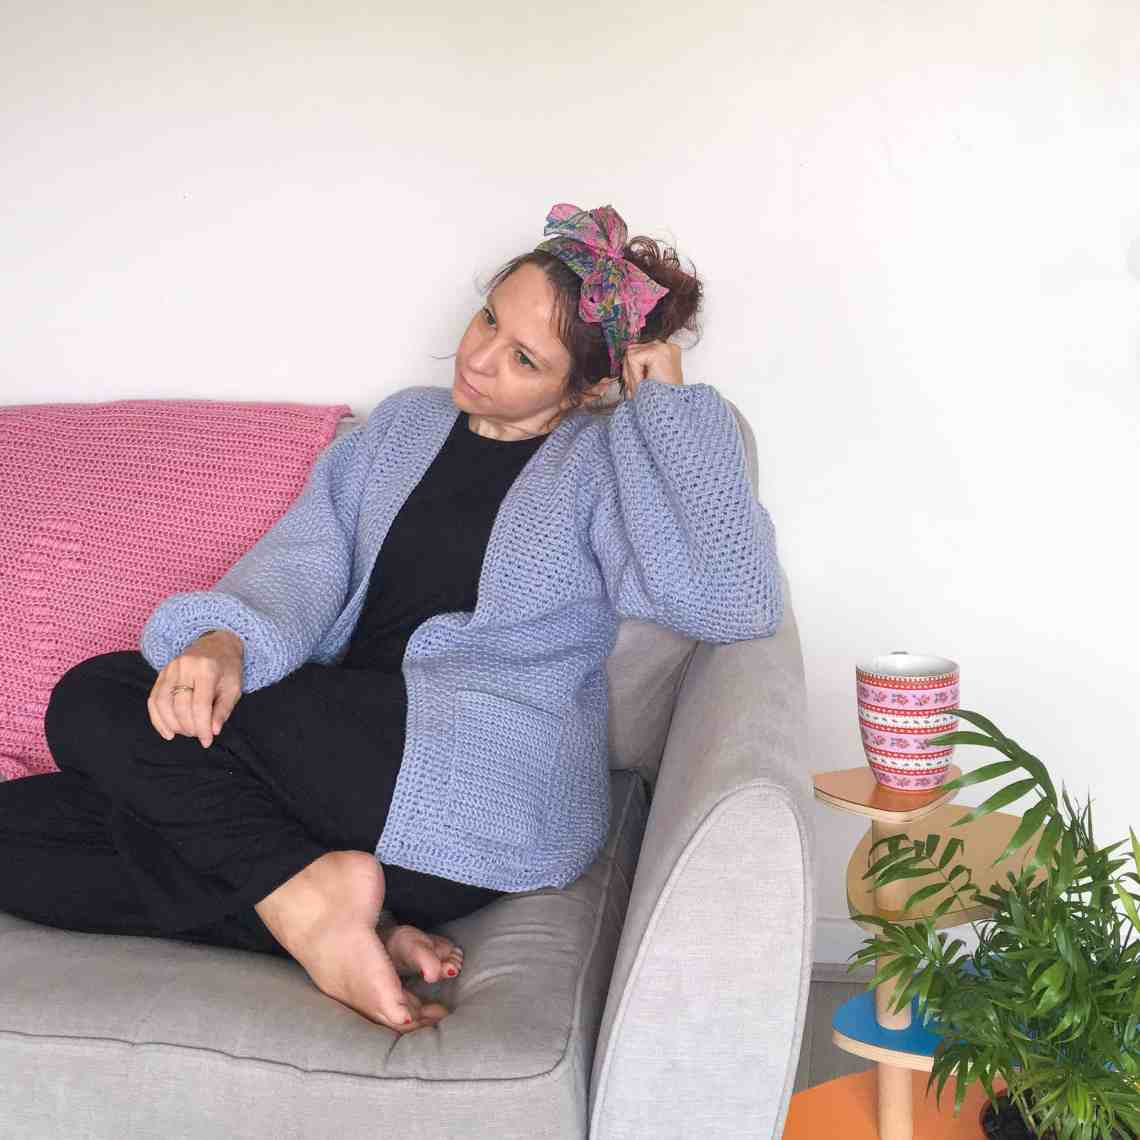 Girl on sofa wearing crochet cardigan and headband